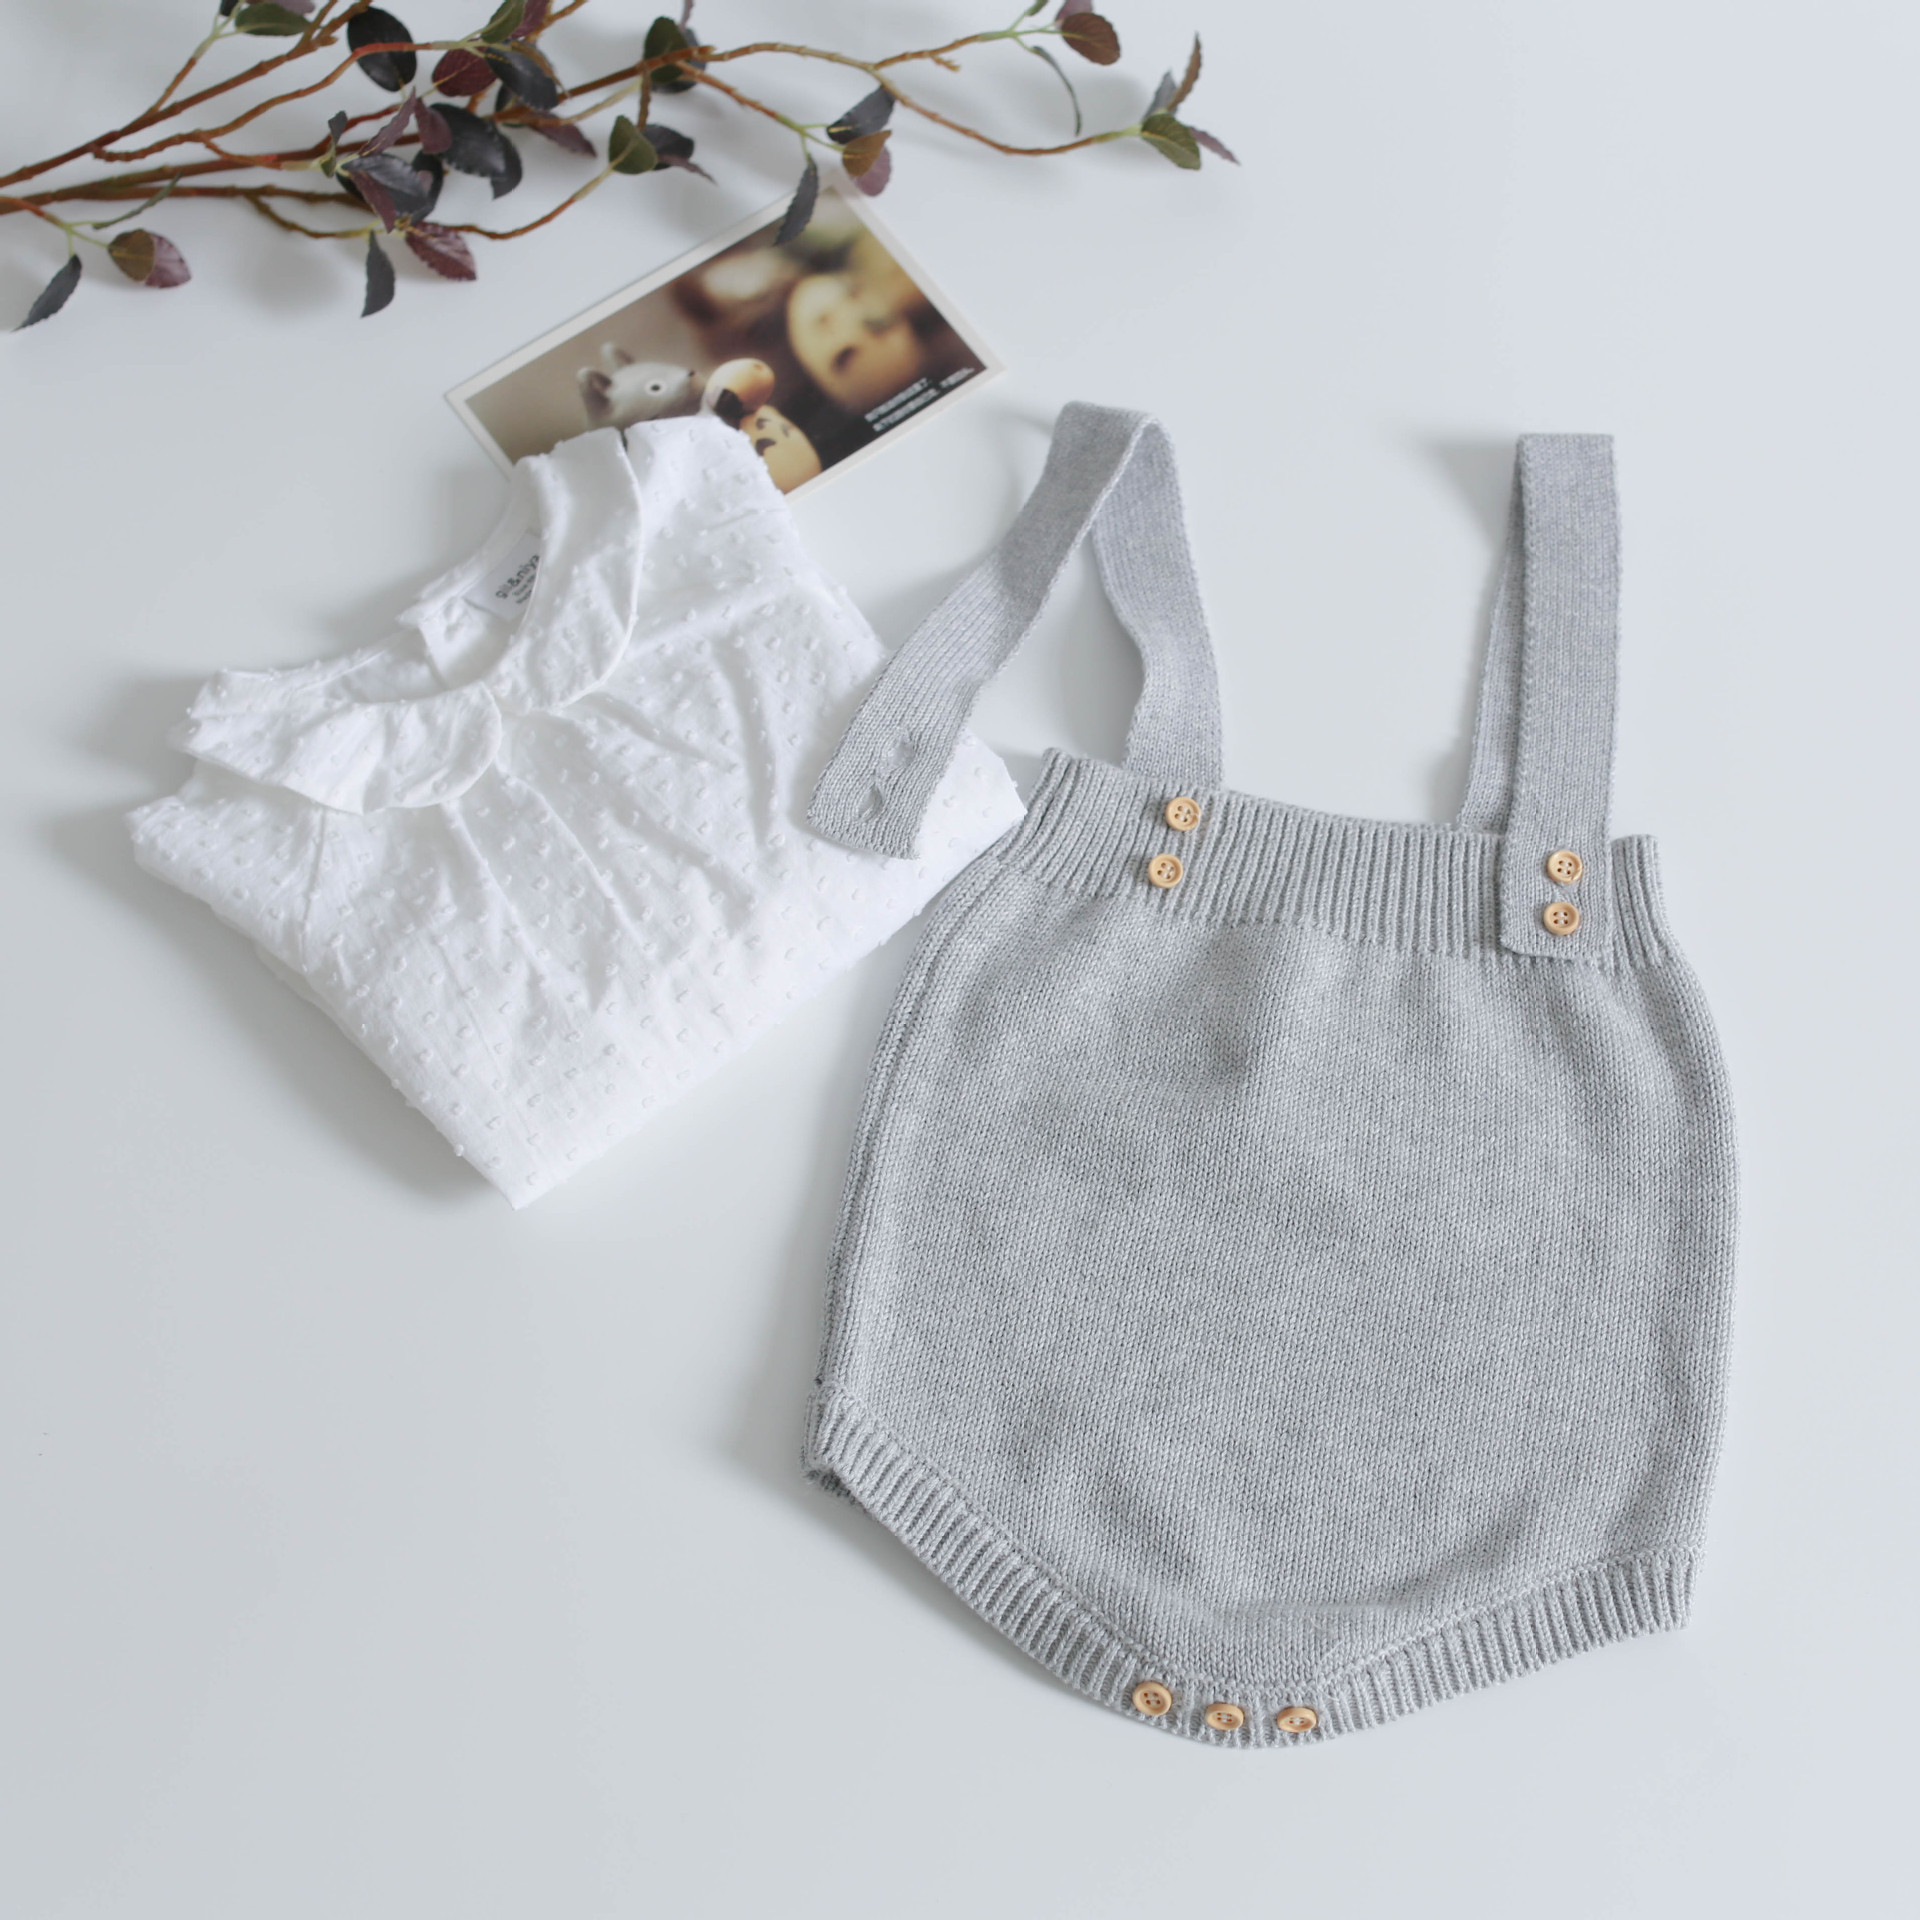 H235095faef6c46c0b7bbc8482bb4f7010 Baby Knitting Rompers Cute Overalls Newborn Baby Girls Boys Clothes Infantil Baby Girl Boy Sleeveless Romper Jumpsuit 0-24m